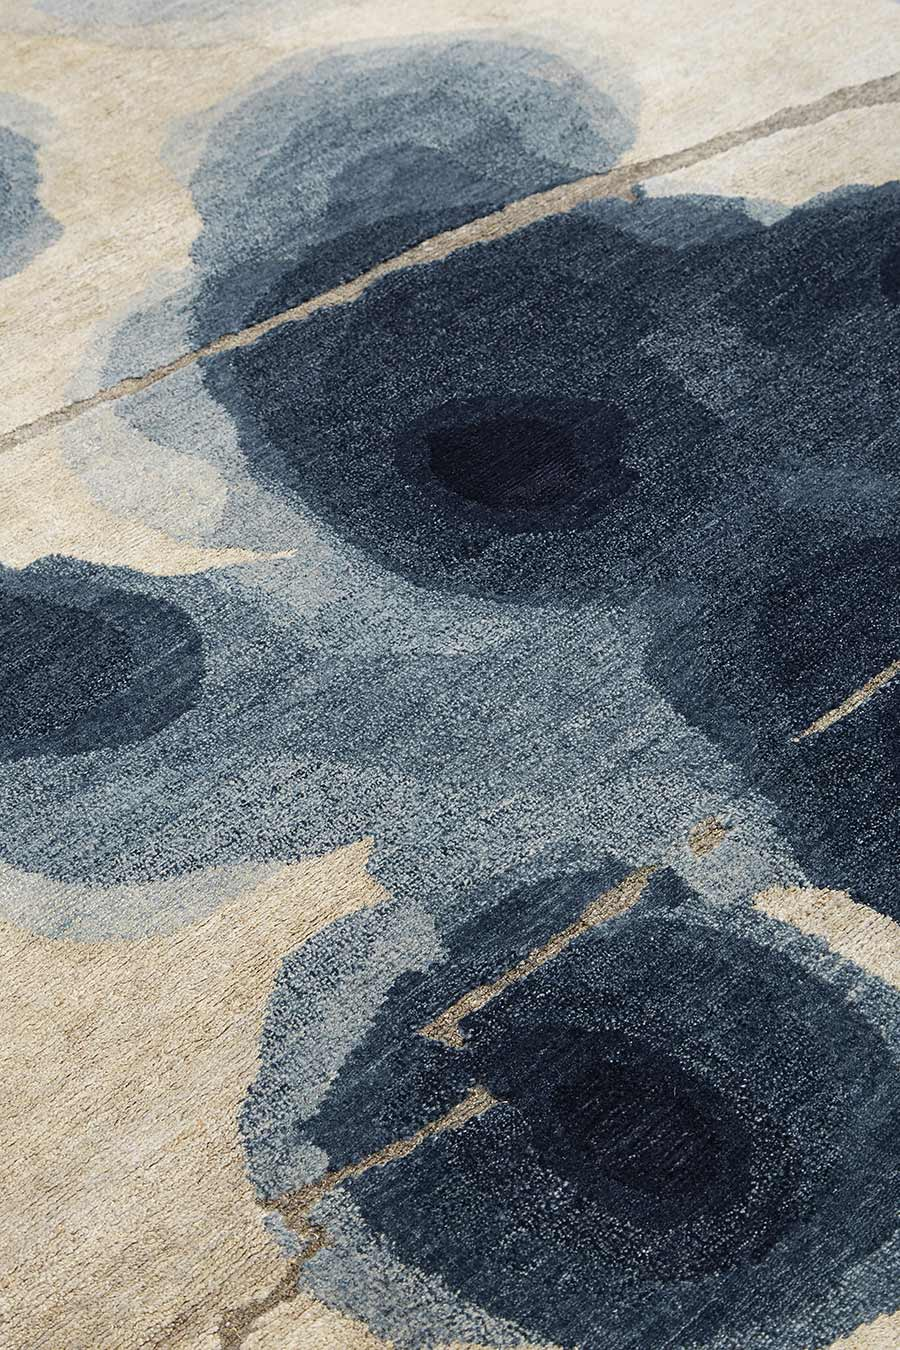 Detailed image of painterly Inkblot handknot rug by Hare + Klein